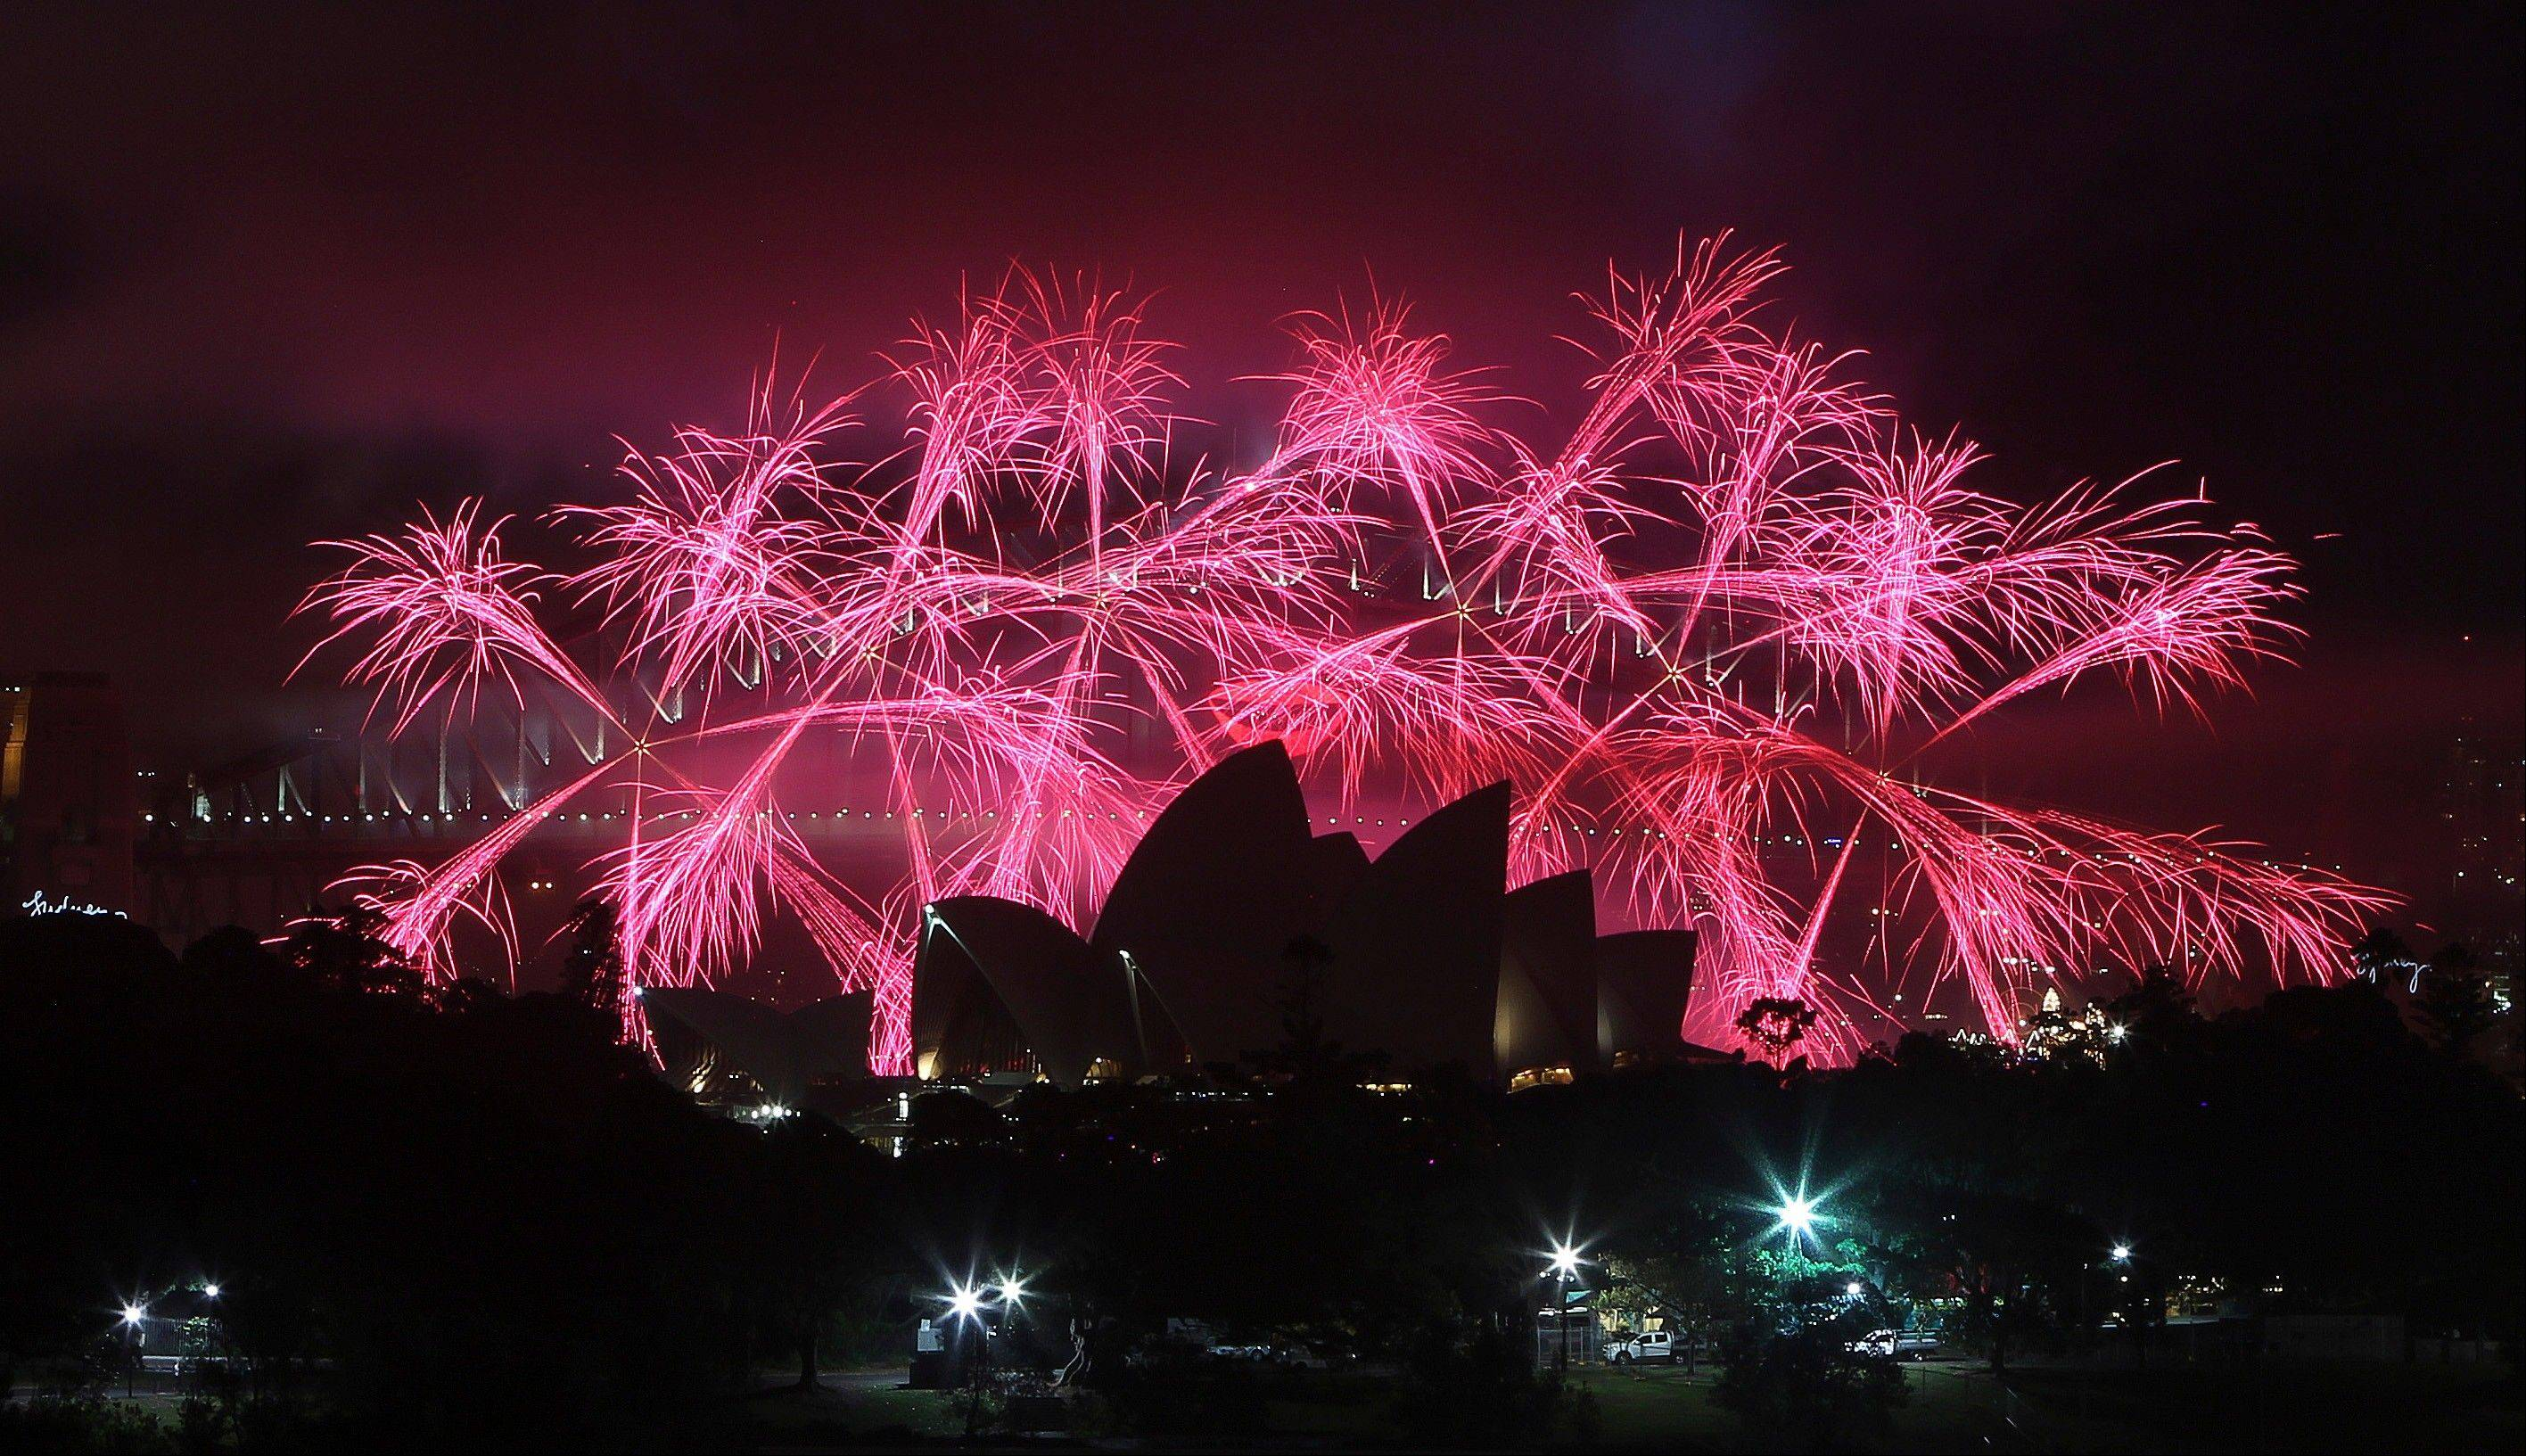 Fireworks explode behind the Opera House during the New Year celebrations in Sydney, Australia, Tuesday, Jan. 1, 2013.